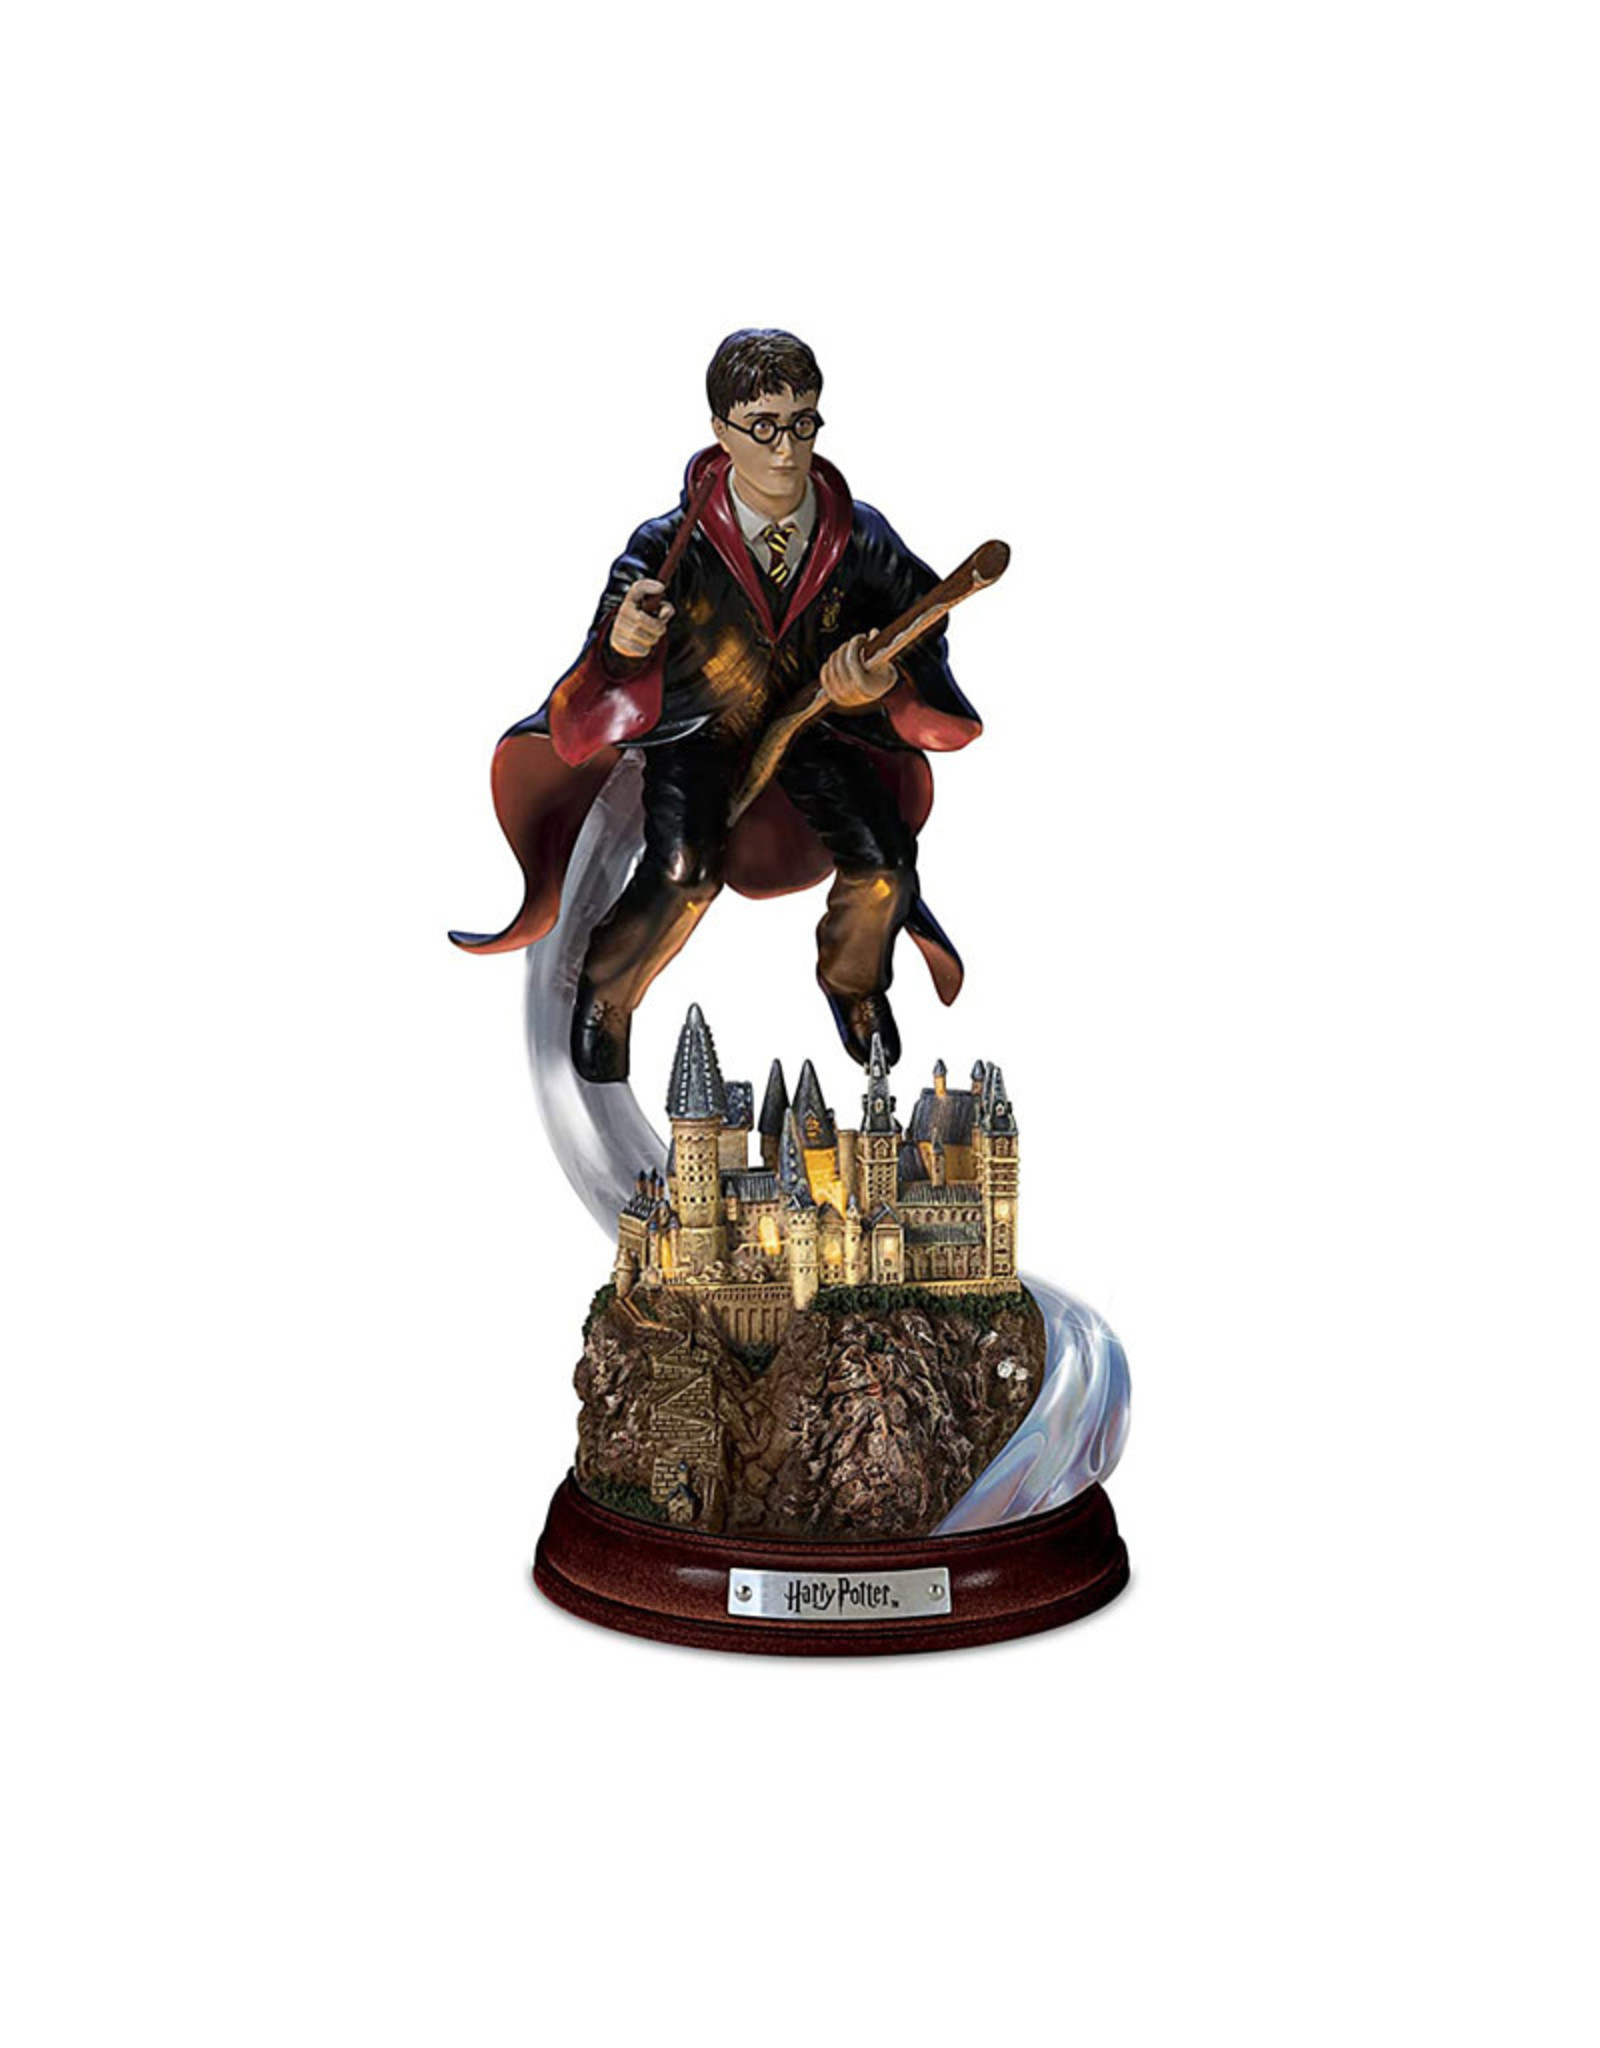 Harry Potter Harry Potter ( Collectible Figurine ) Magical Flight